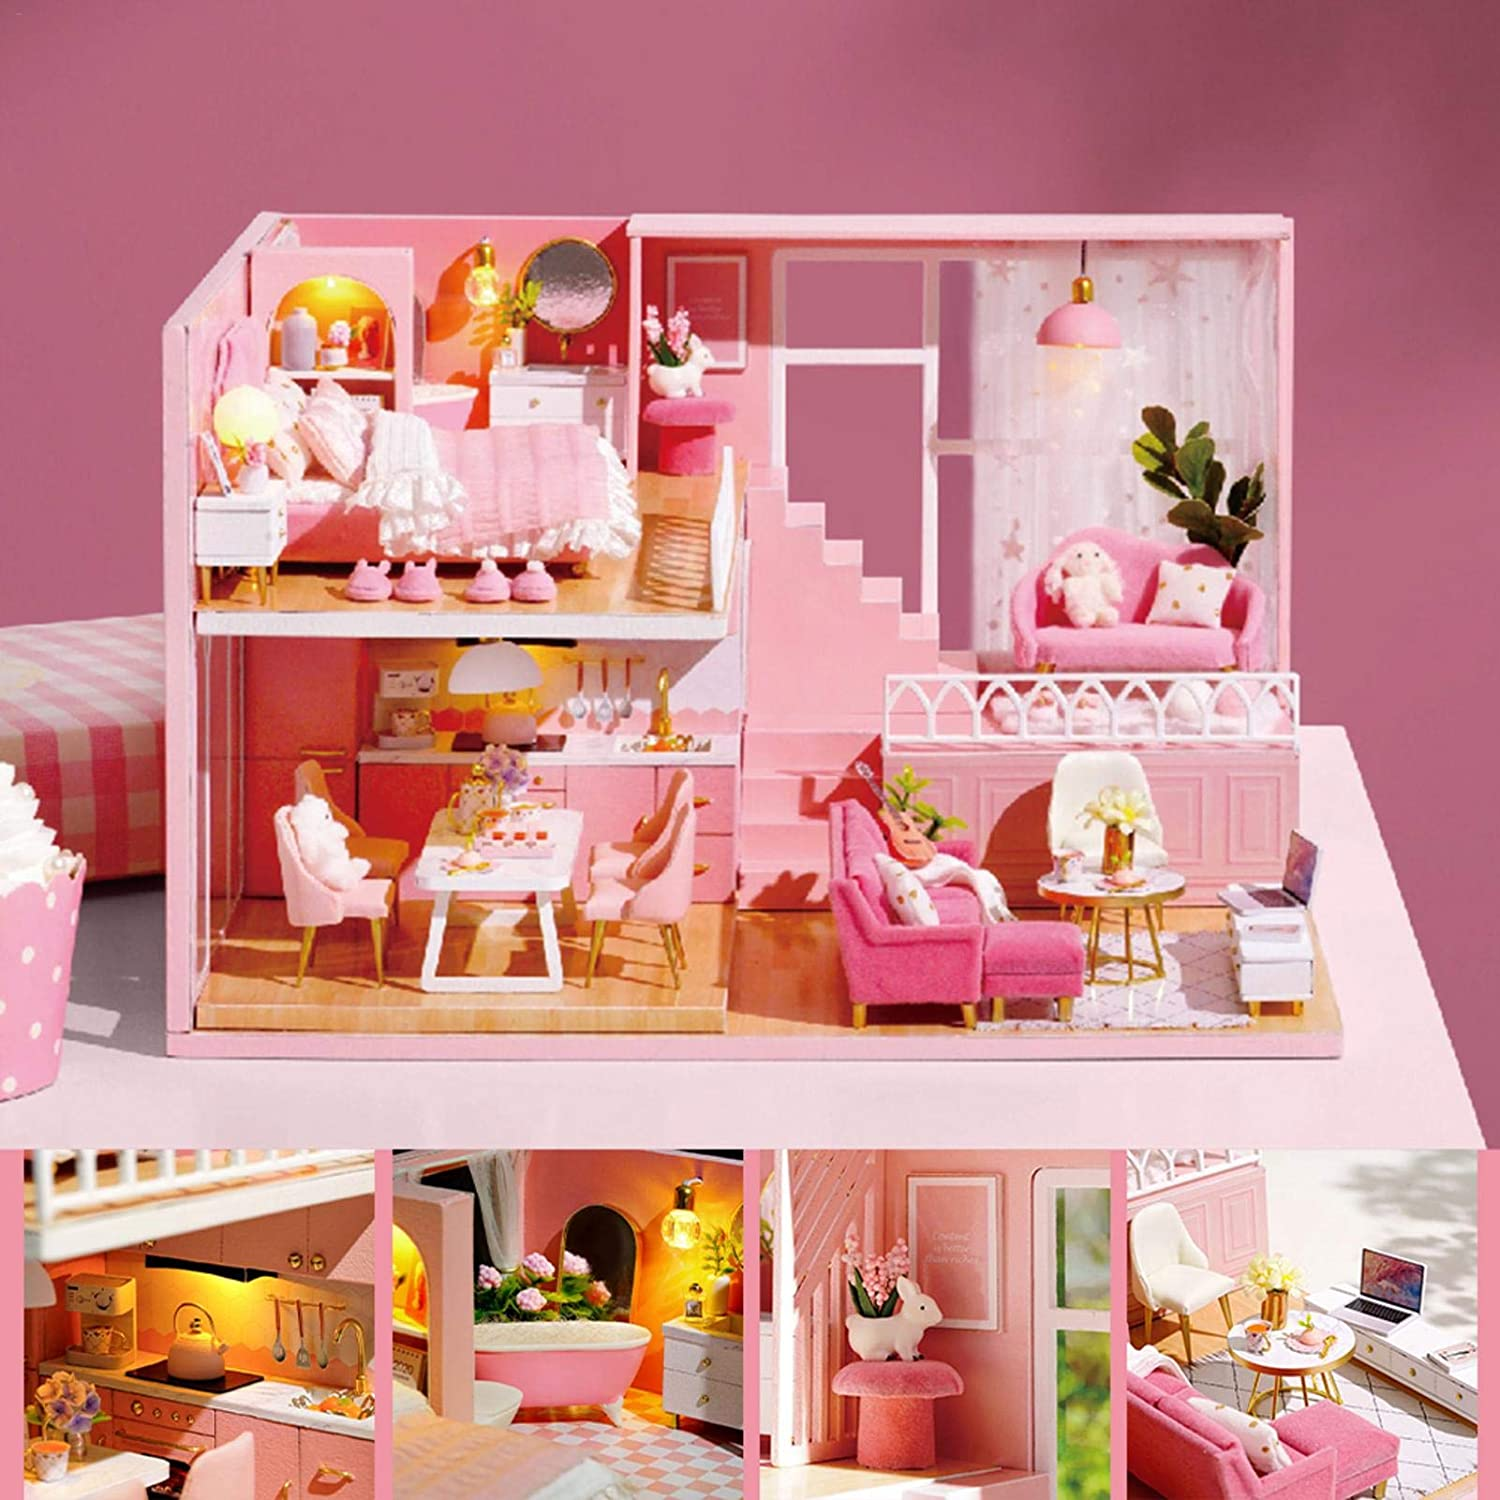 DIY Dollhouse Three-Dimensional Assembly Minneapolis Mall Beauty products Hous Cottage Miniature